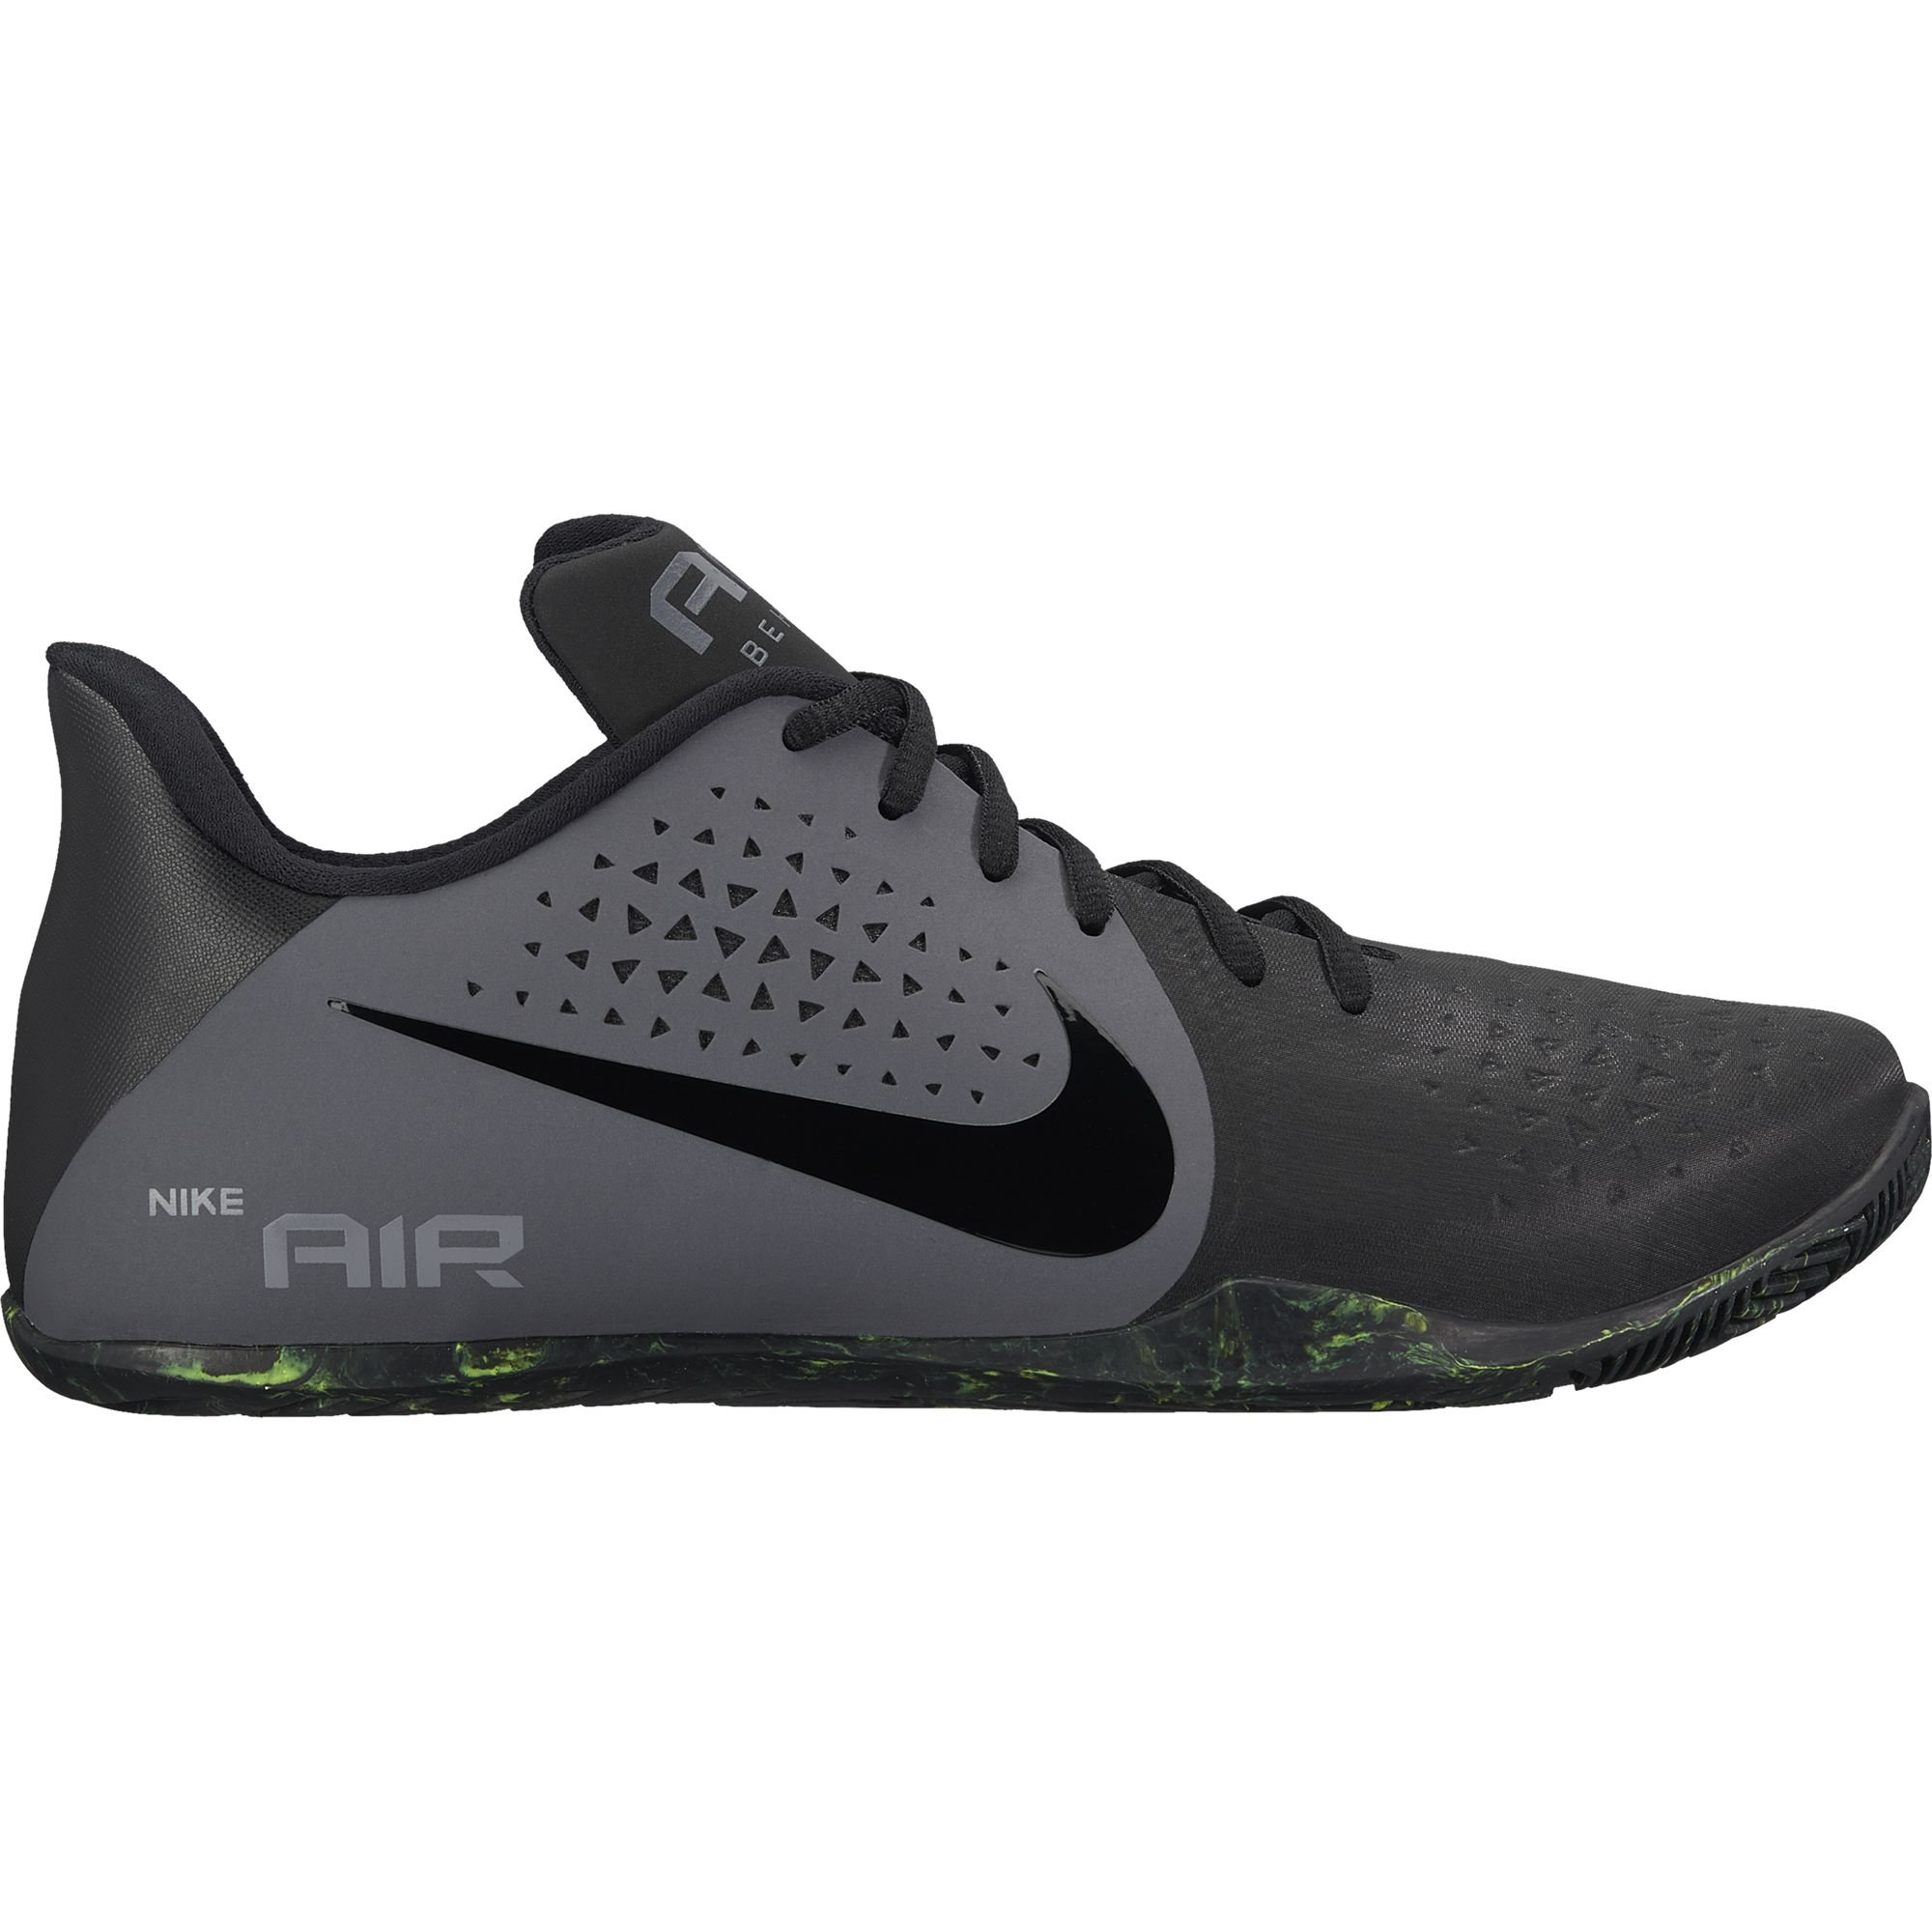 Air Behold Low Basketball Shoe